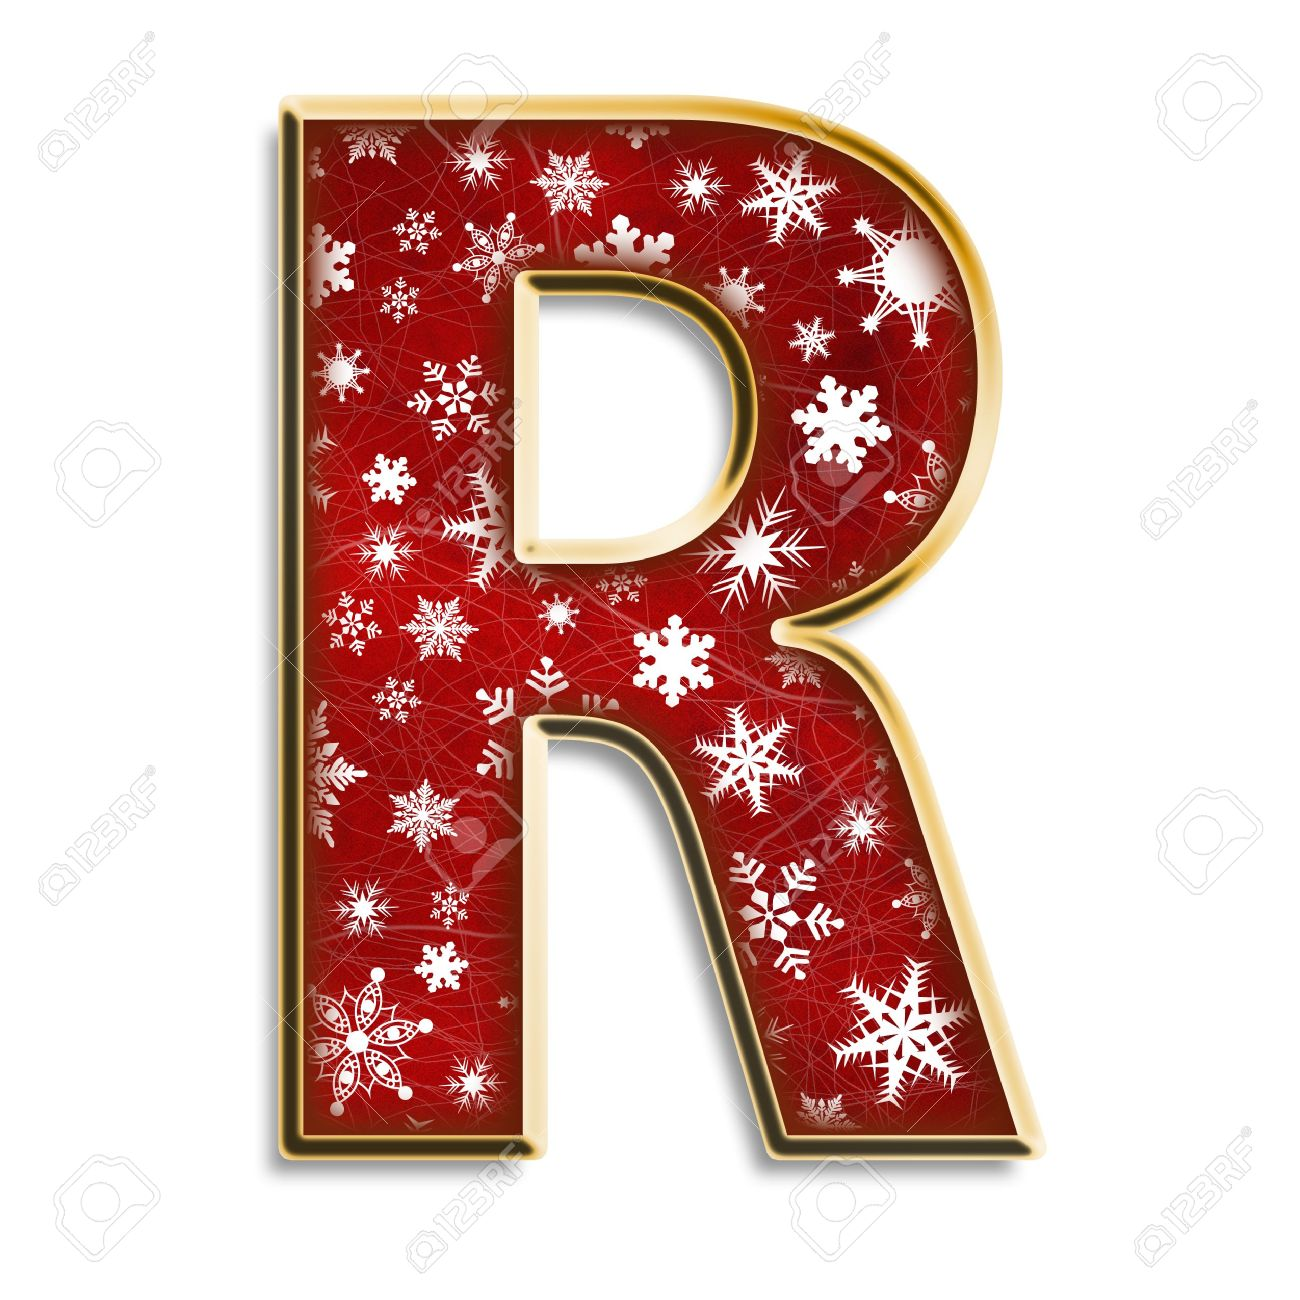 White Snowflakes On Red With Gold Capital Letter R Isolated On